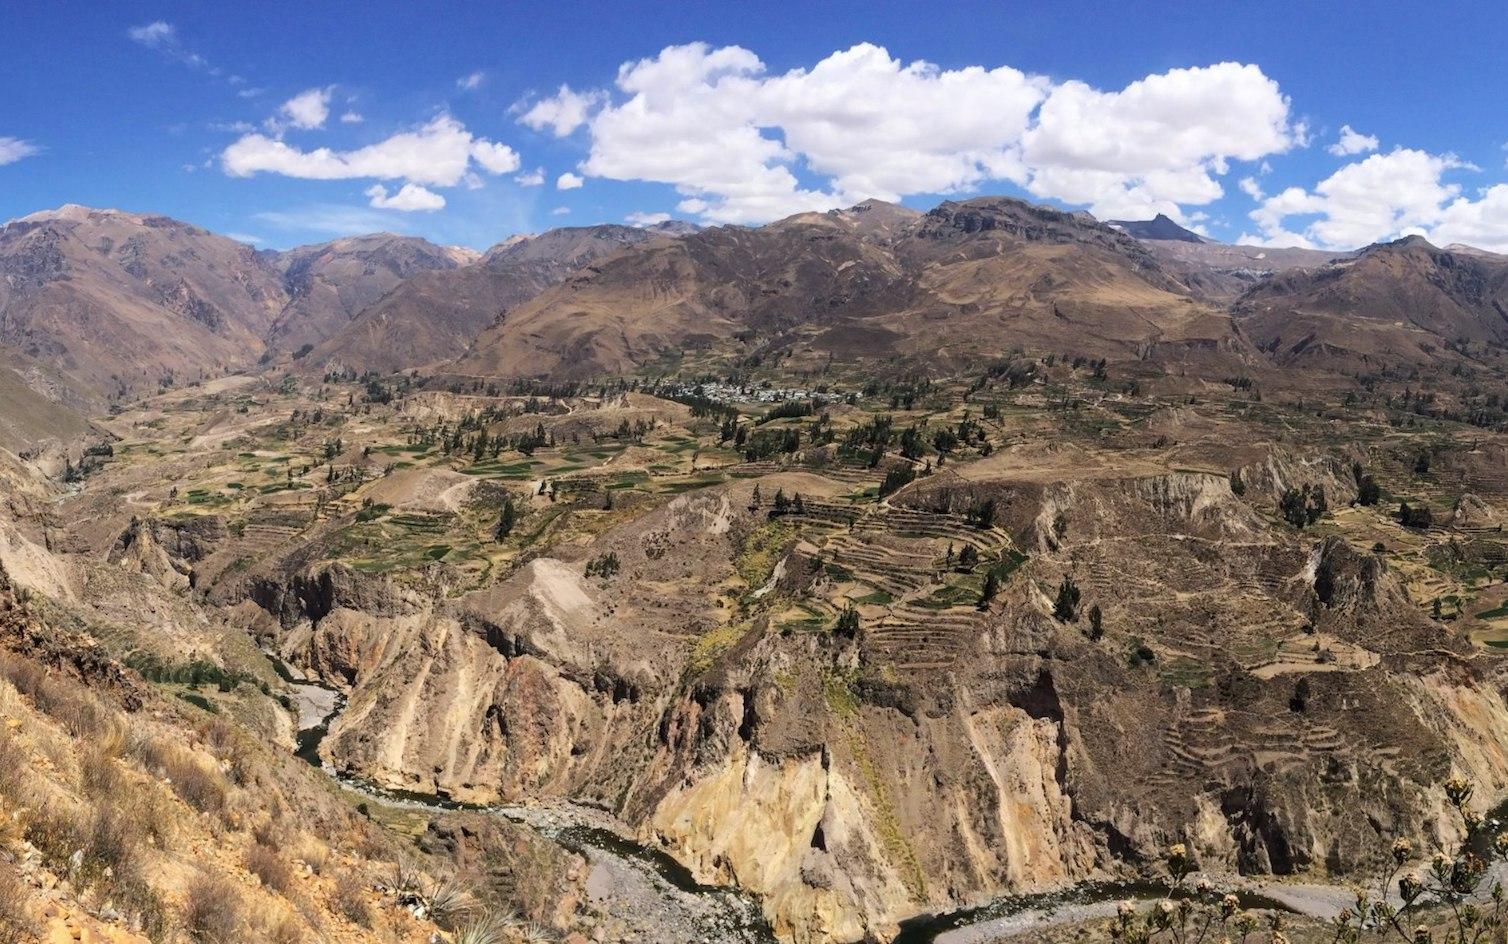 The Definitive Guide To Conquering Peru's Colca Canyon